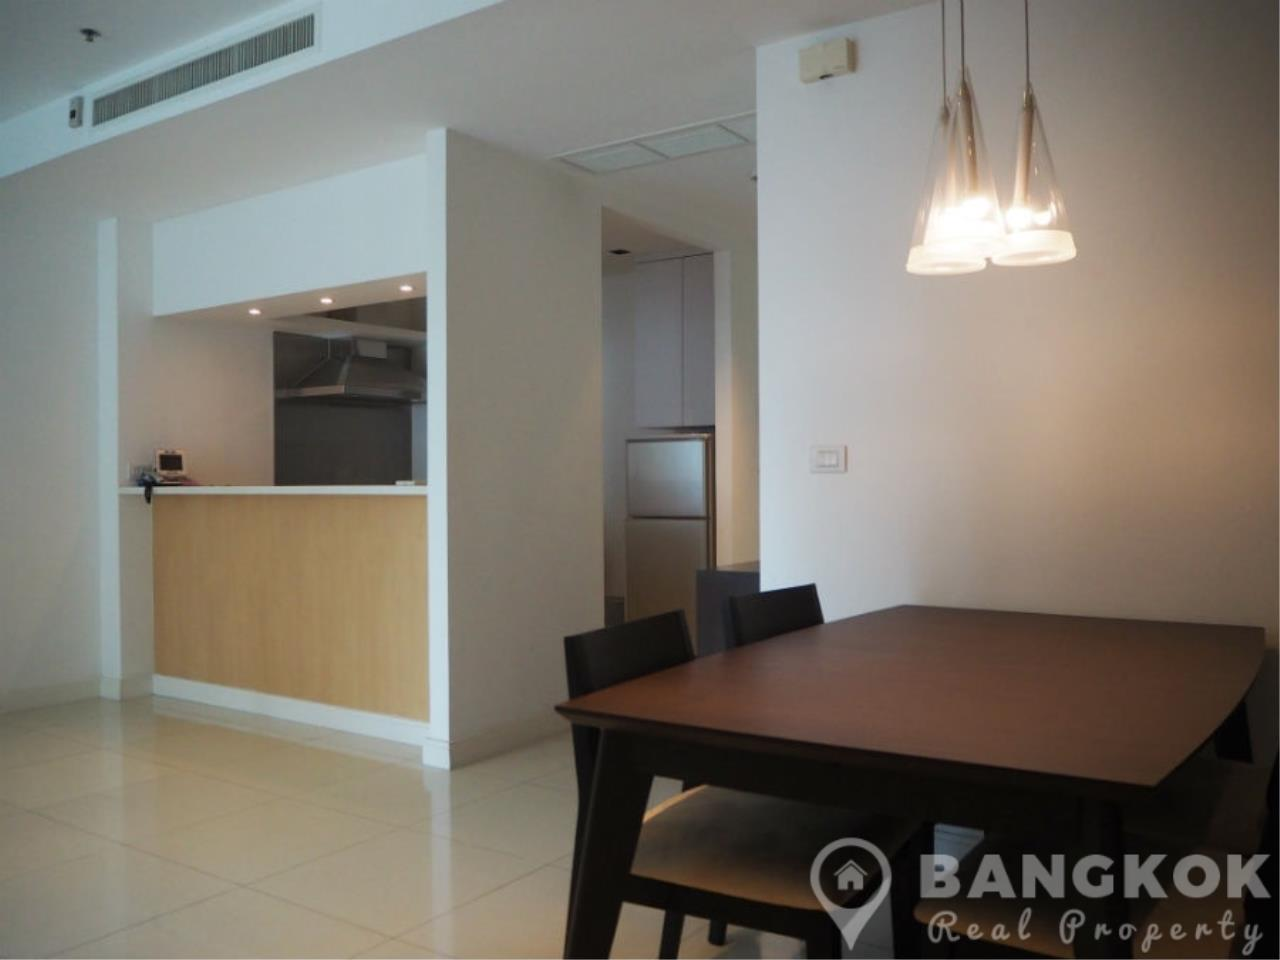 Bangkok Real Property Agency's Athenee Residence | Spacious Modern 2 Bed 2 Bath with Great City Views 7